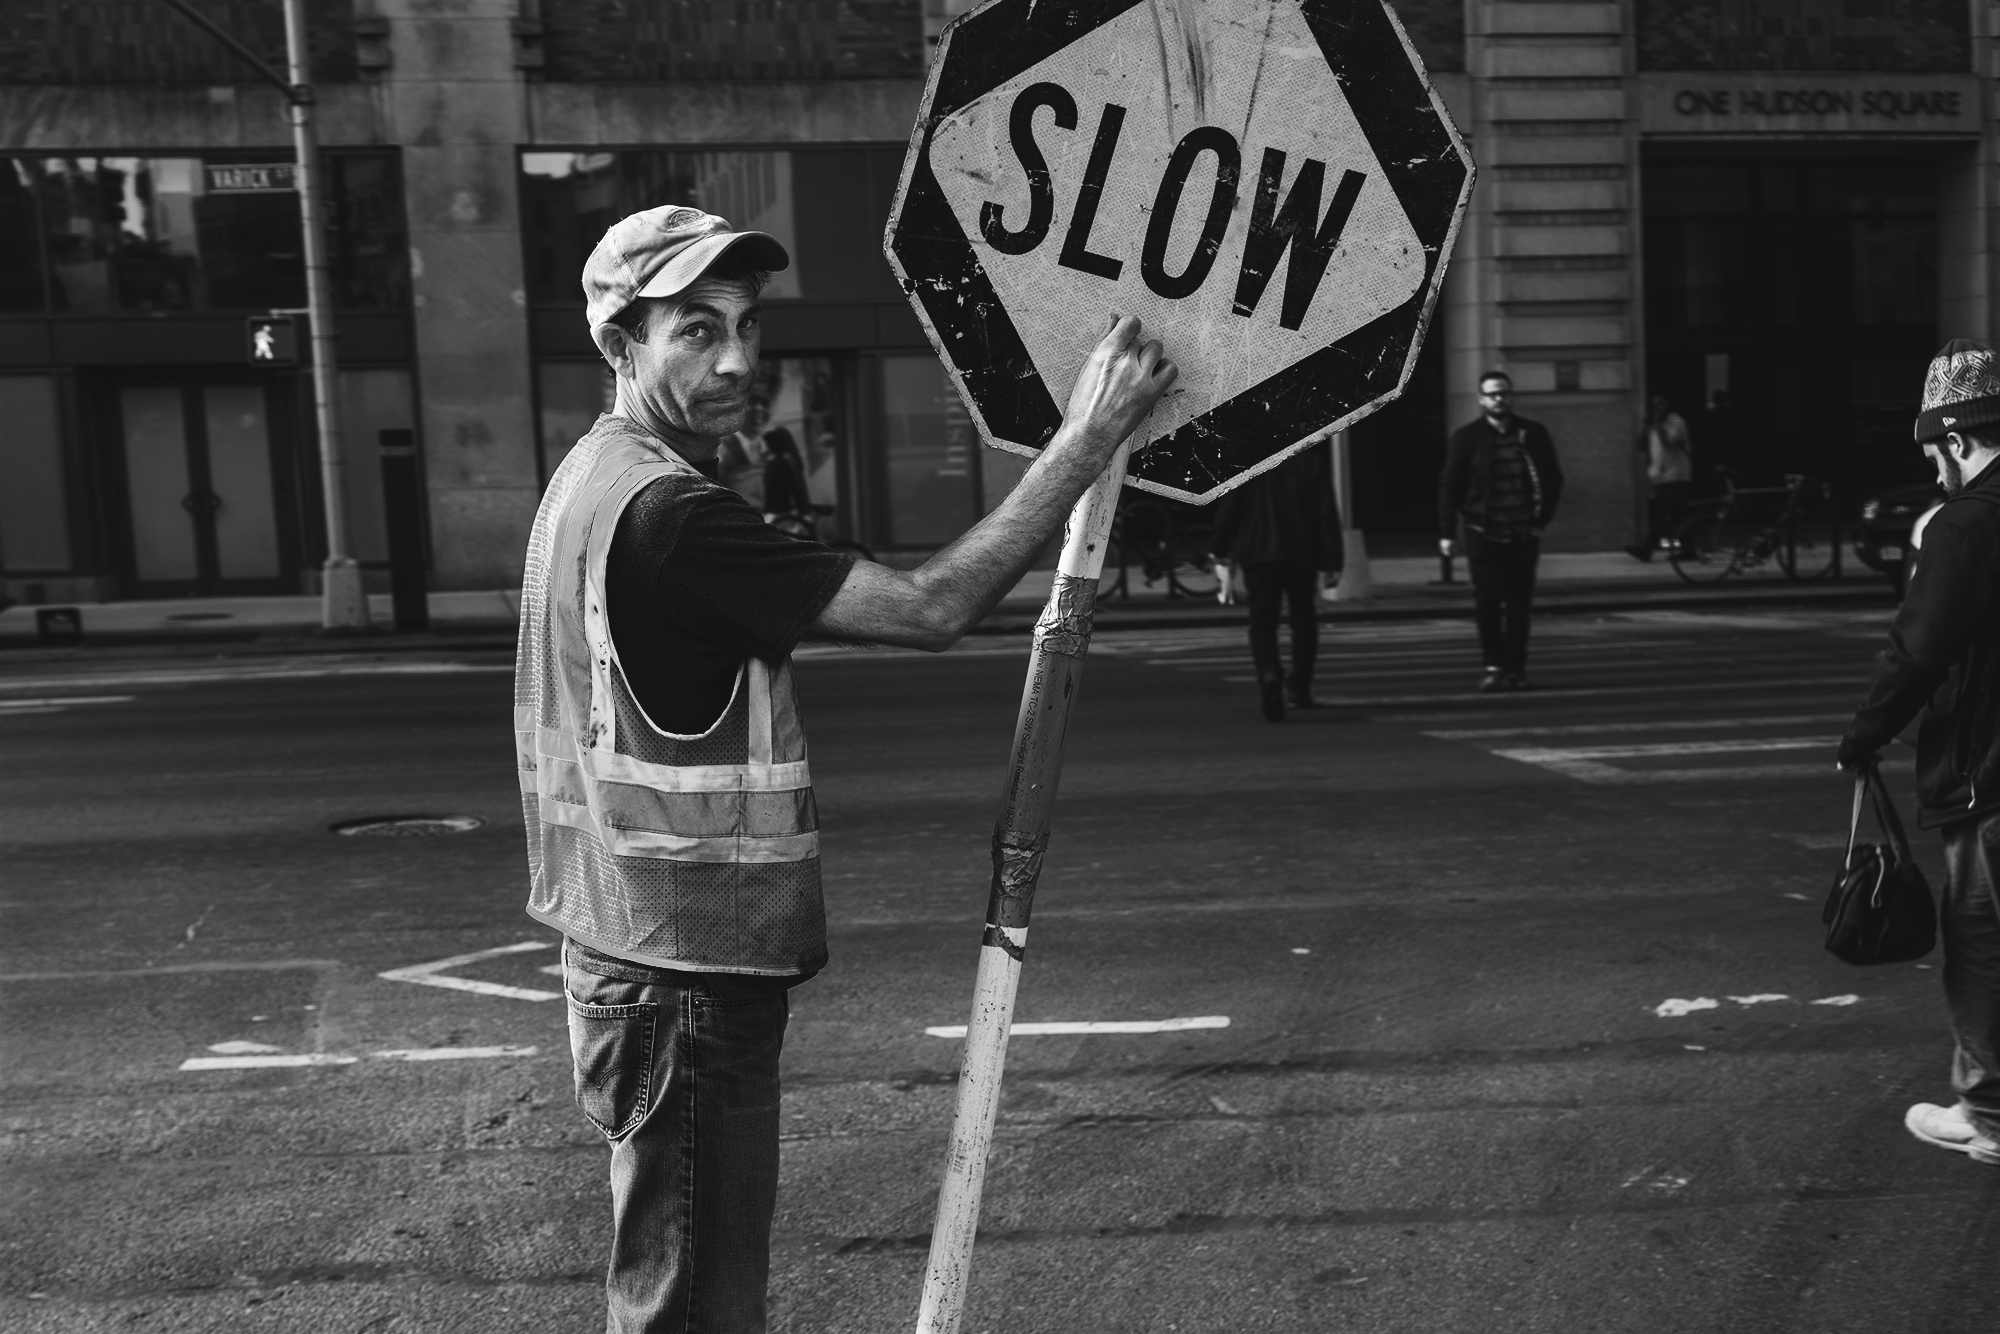 NYC_Street_2017_Slow_Construction_Man-002crp.jpg